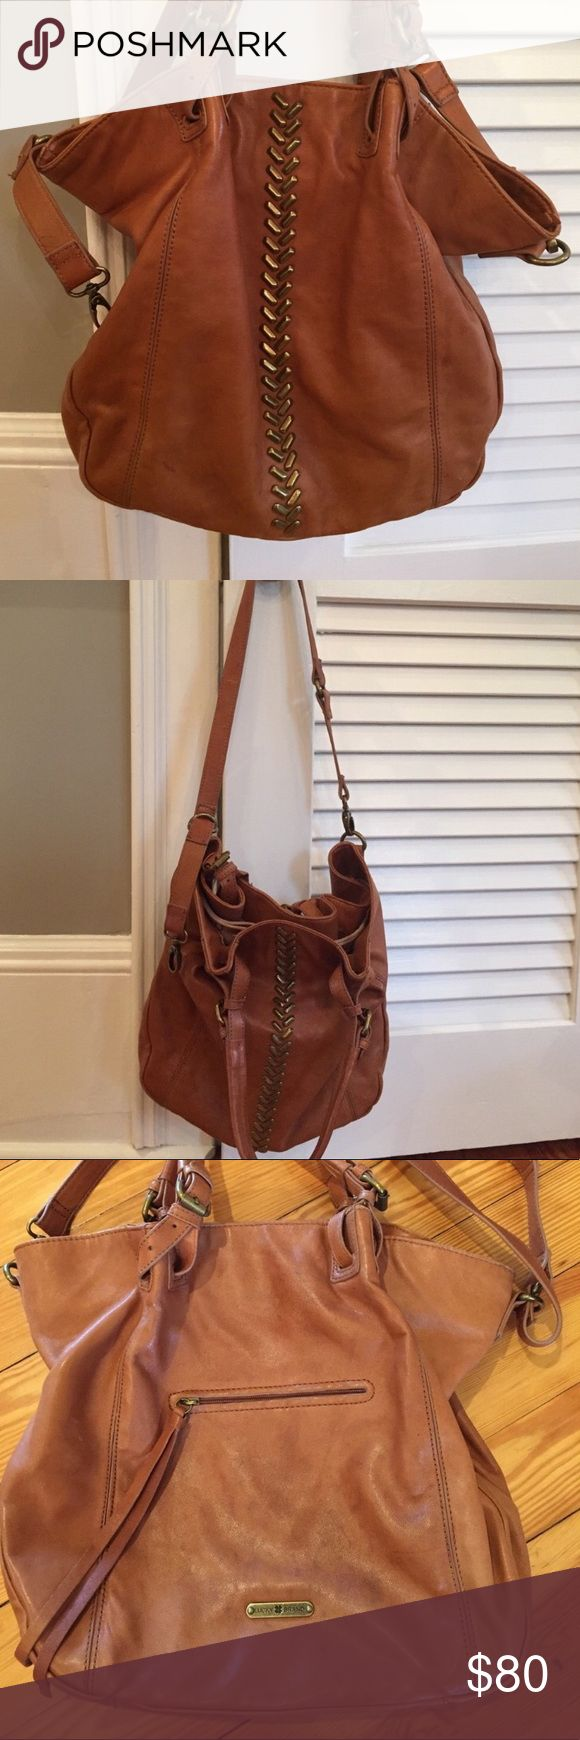 Lucky Brand purse Leather lucky brand slouchy purse, 100% leather, has use to it but in good condition for a new owner! Inside is clean no stains, can be used as a should bag or arm bag or crossbody. Measure app. 13.5 x 15. Some water marks but hard to see. 100% authentic ! Originally 180! Lucky Brand Bags Shoulder Bags